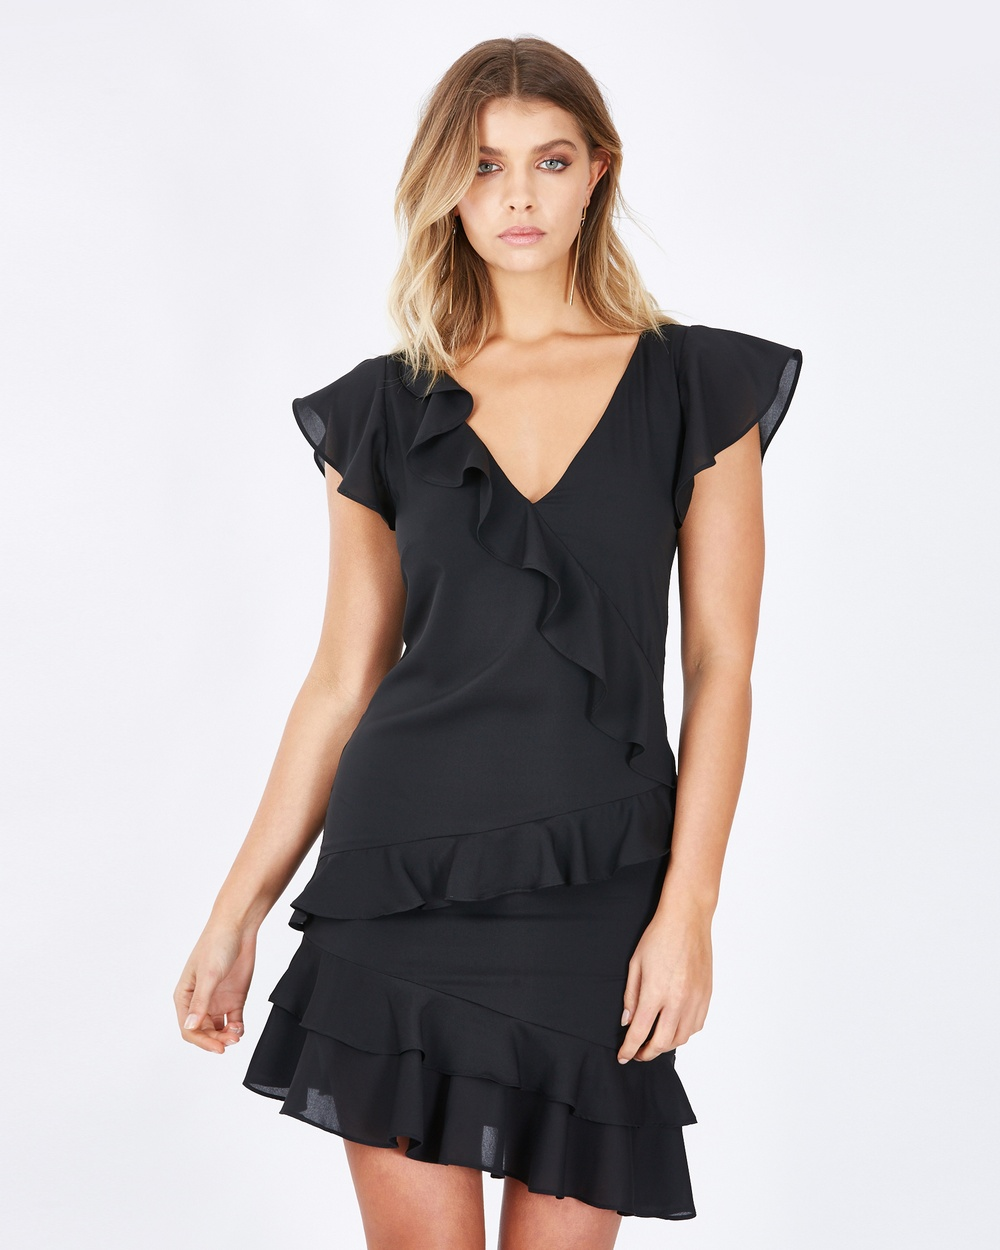 Calli Amara Mini Frill Dress Dresses Black Amara Mini Frill Dress